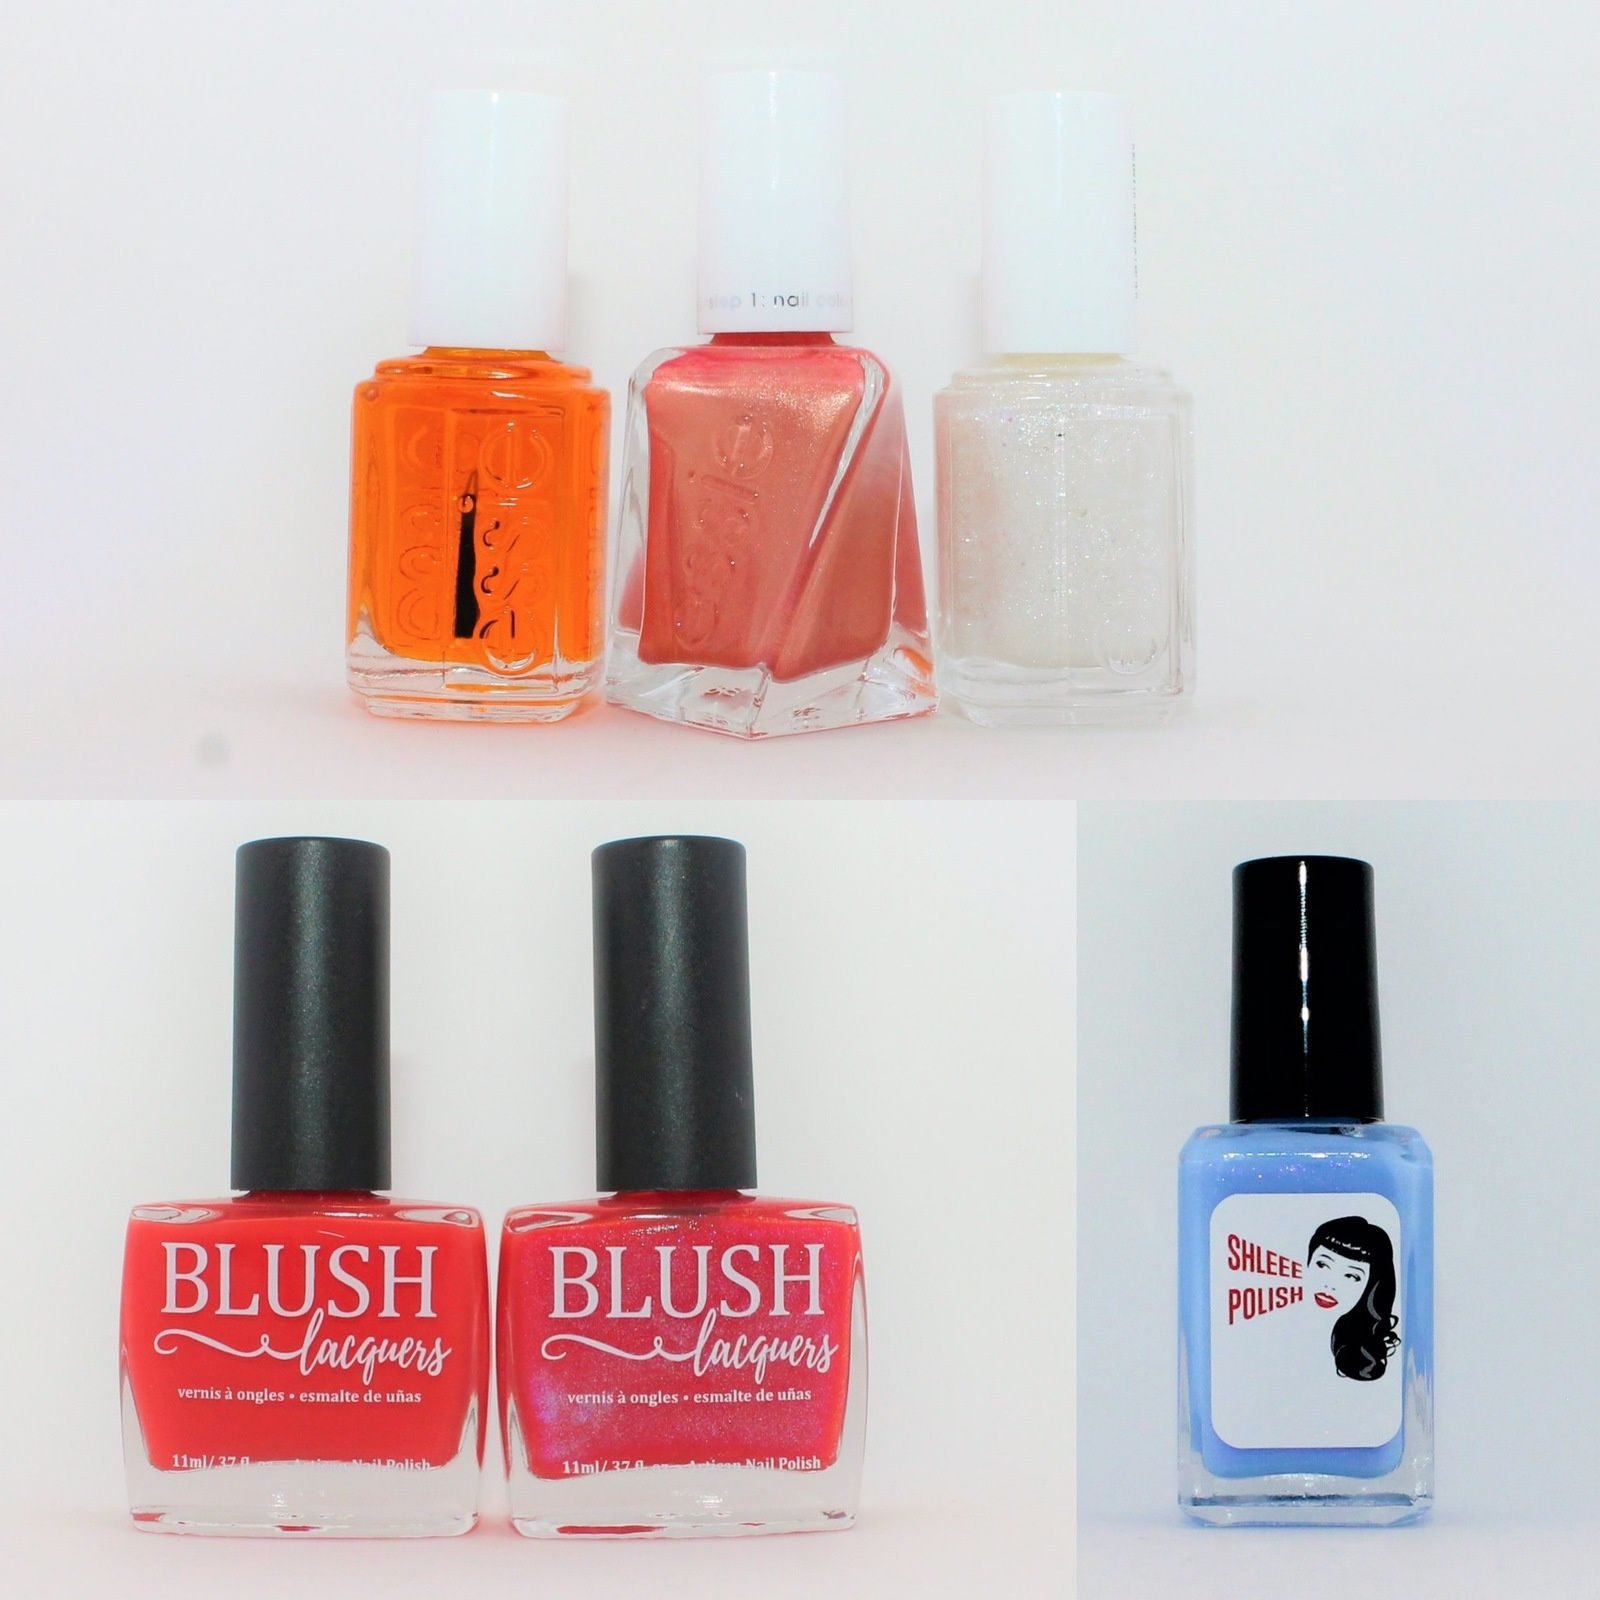 Essie Apricot Cuticule Oil, Sunrush Metal, Let it Bow. Blush LacquersPickin' Poppies, Stop in The Name of Love. HHC November 2019 - Shleee Polish Anime Gaga.